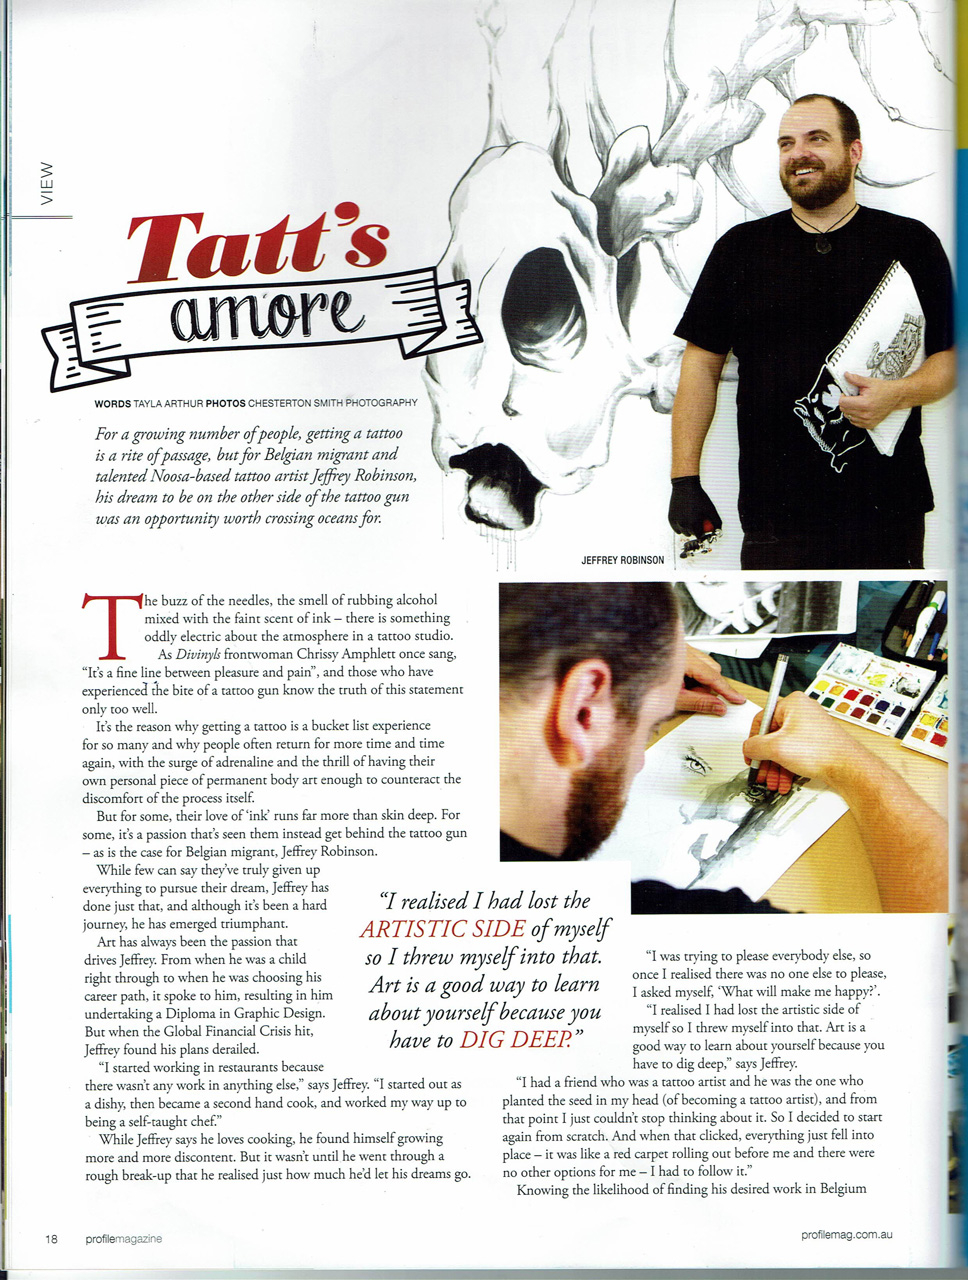 BigFish tattoo in the Bucket List edition of Prfile Magazine